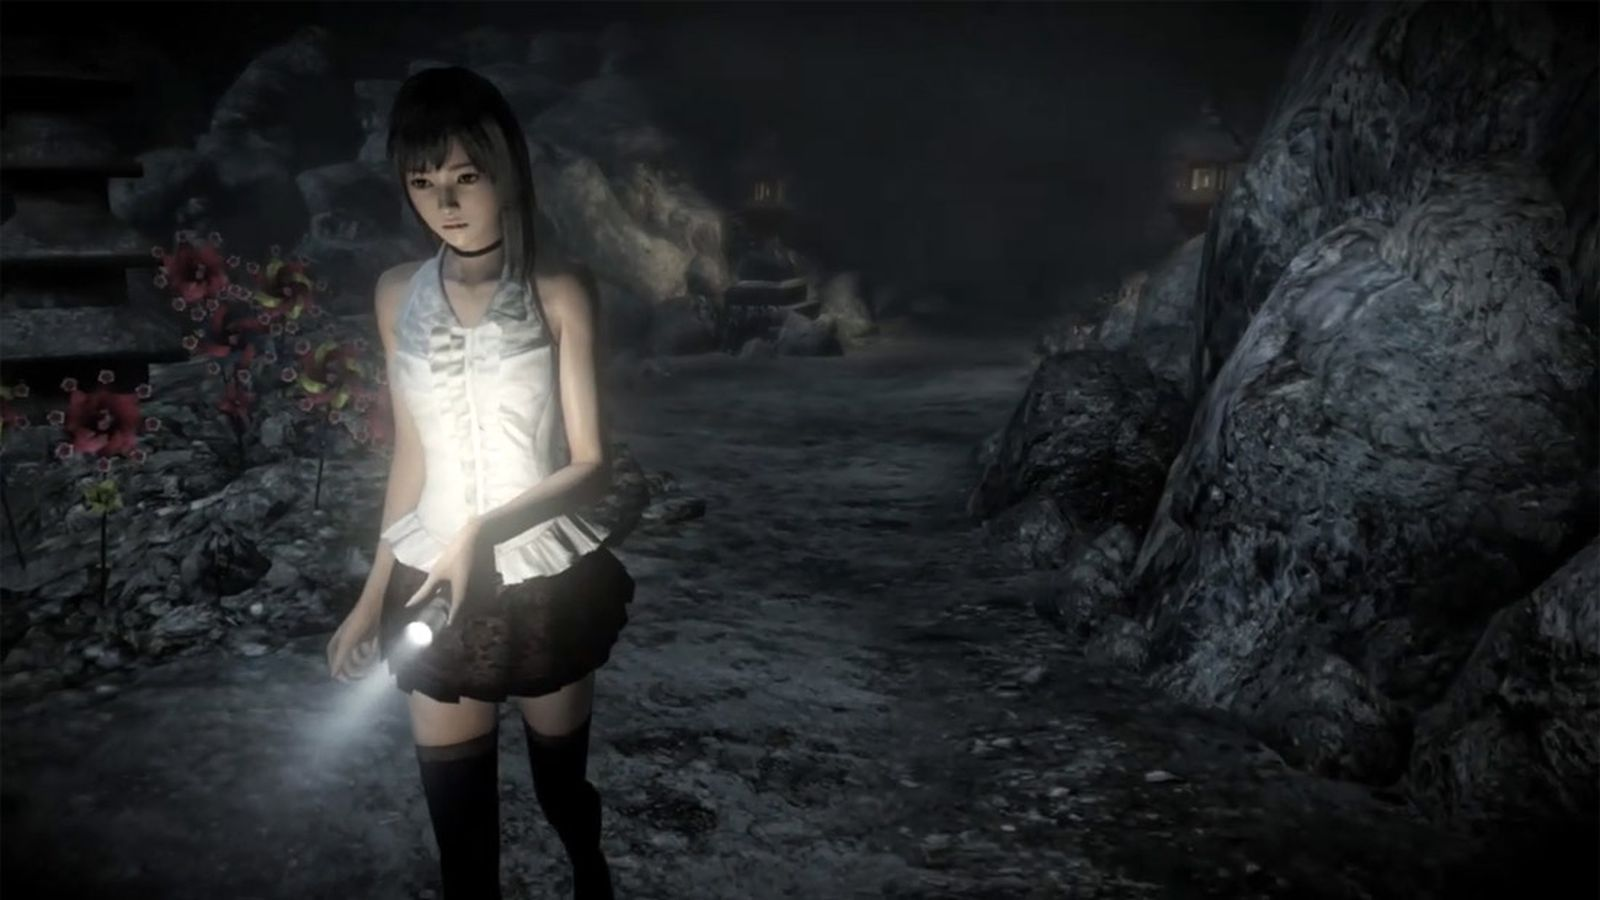 Fatal Frame Wii U : New fatal frame coming to wii u this year polygon